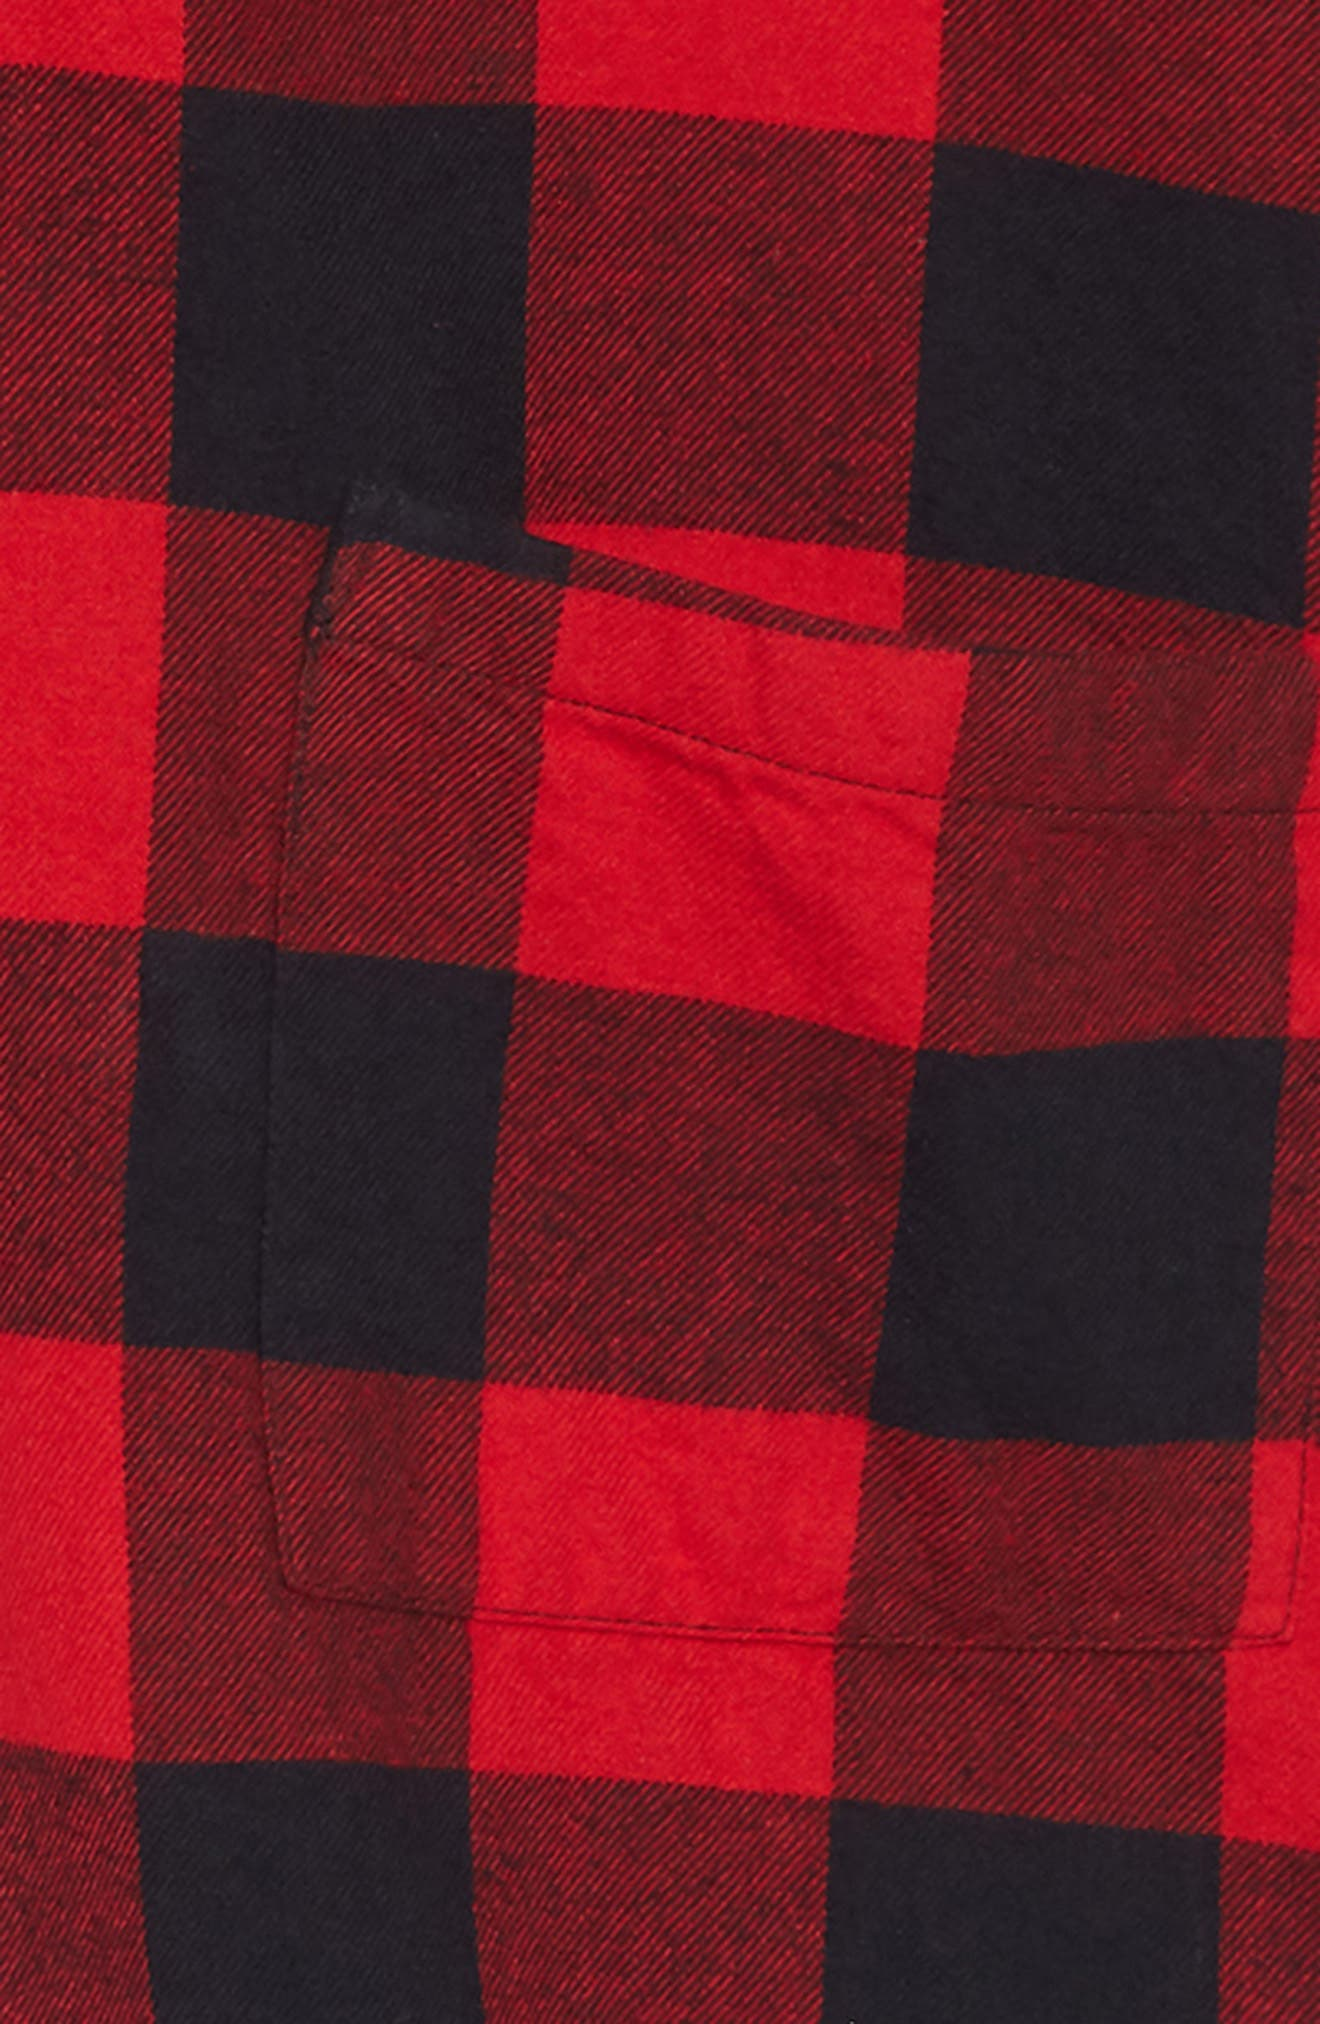 Hooded Flannel Dress,                             Alternate thumbnail 3, color,                             RED PEPPER BUFFALO CHECK